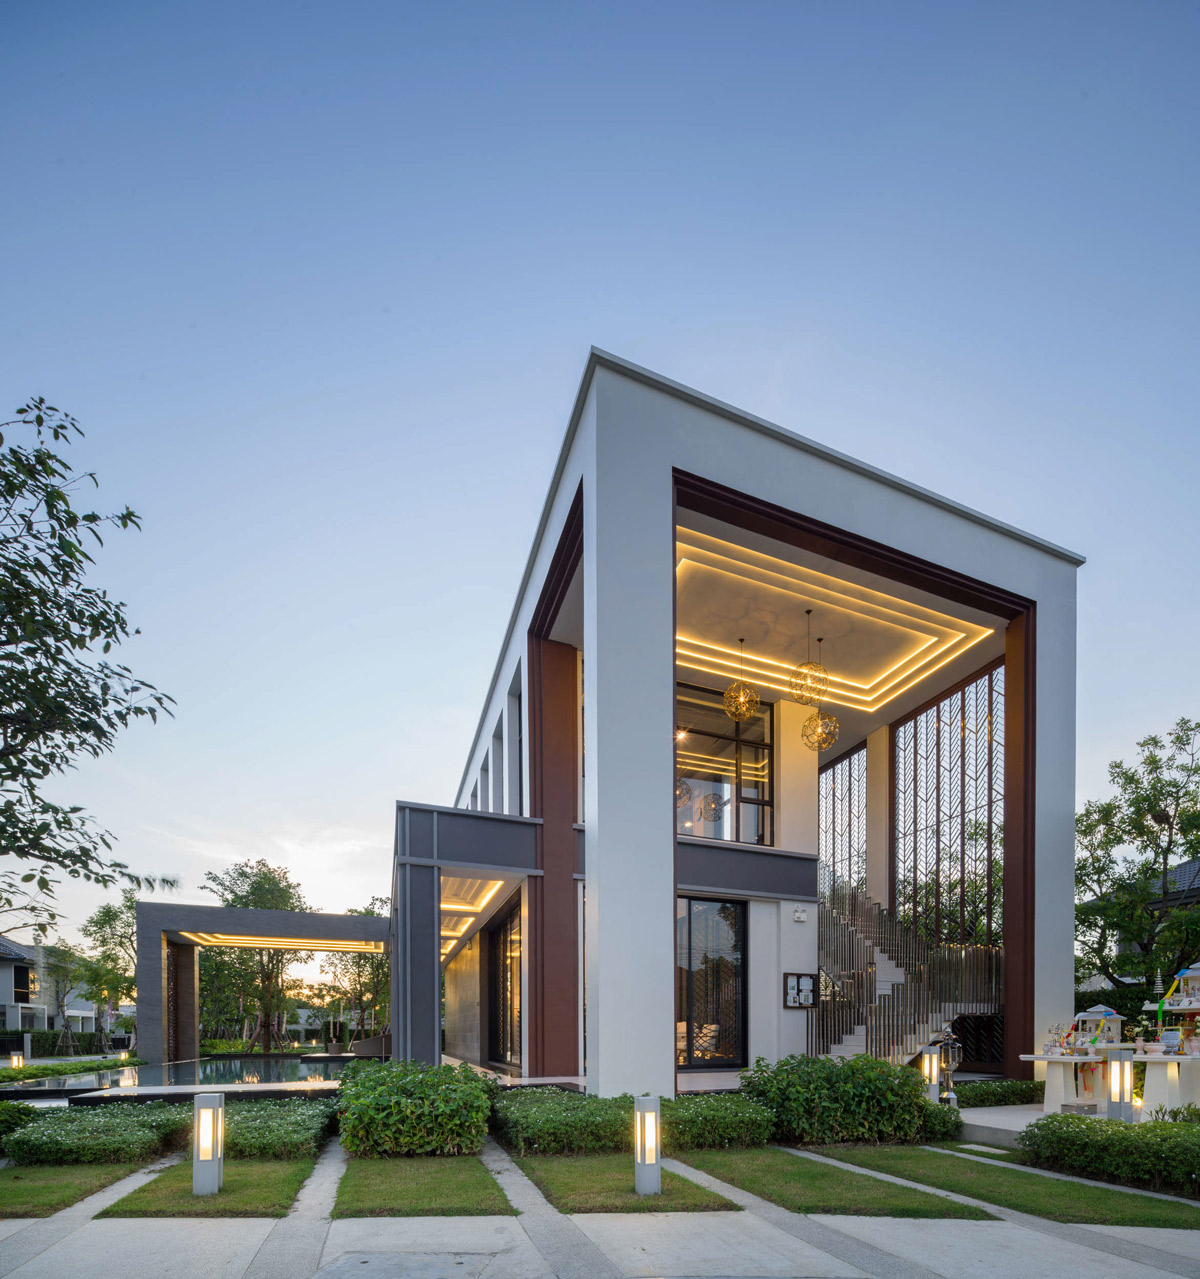 Three-rising-structures-modern-house-elevation